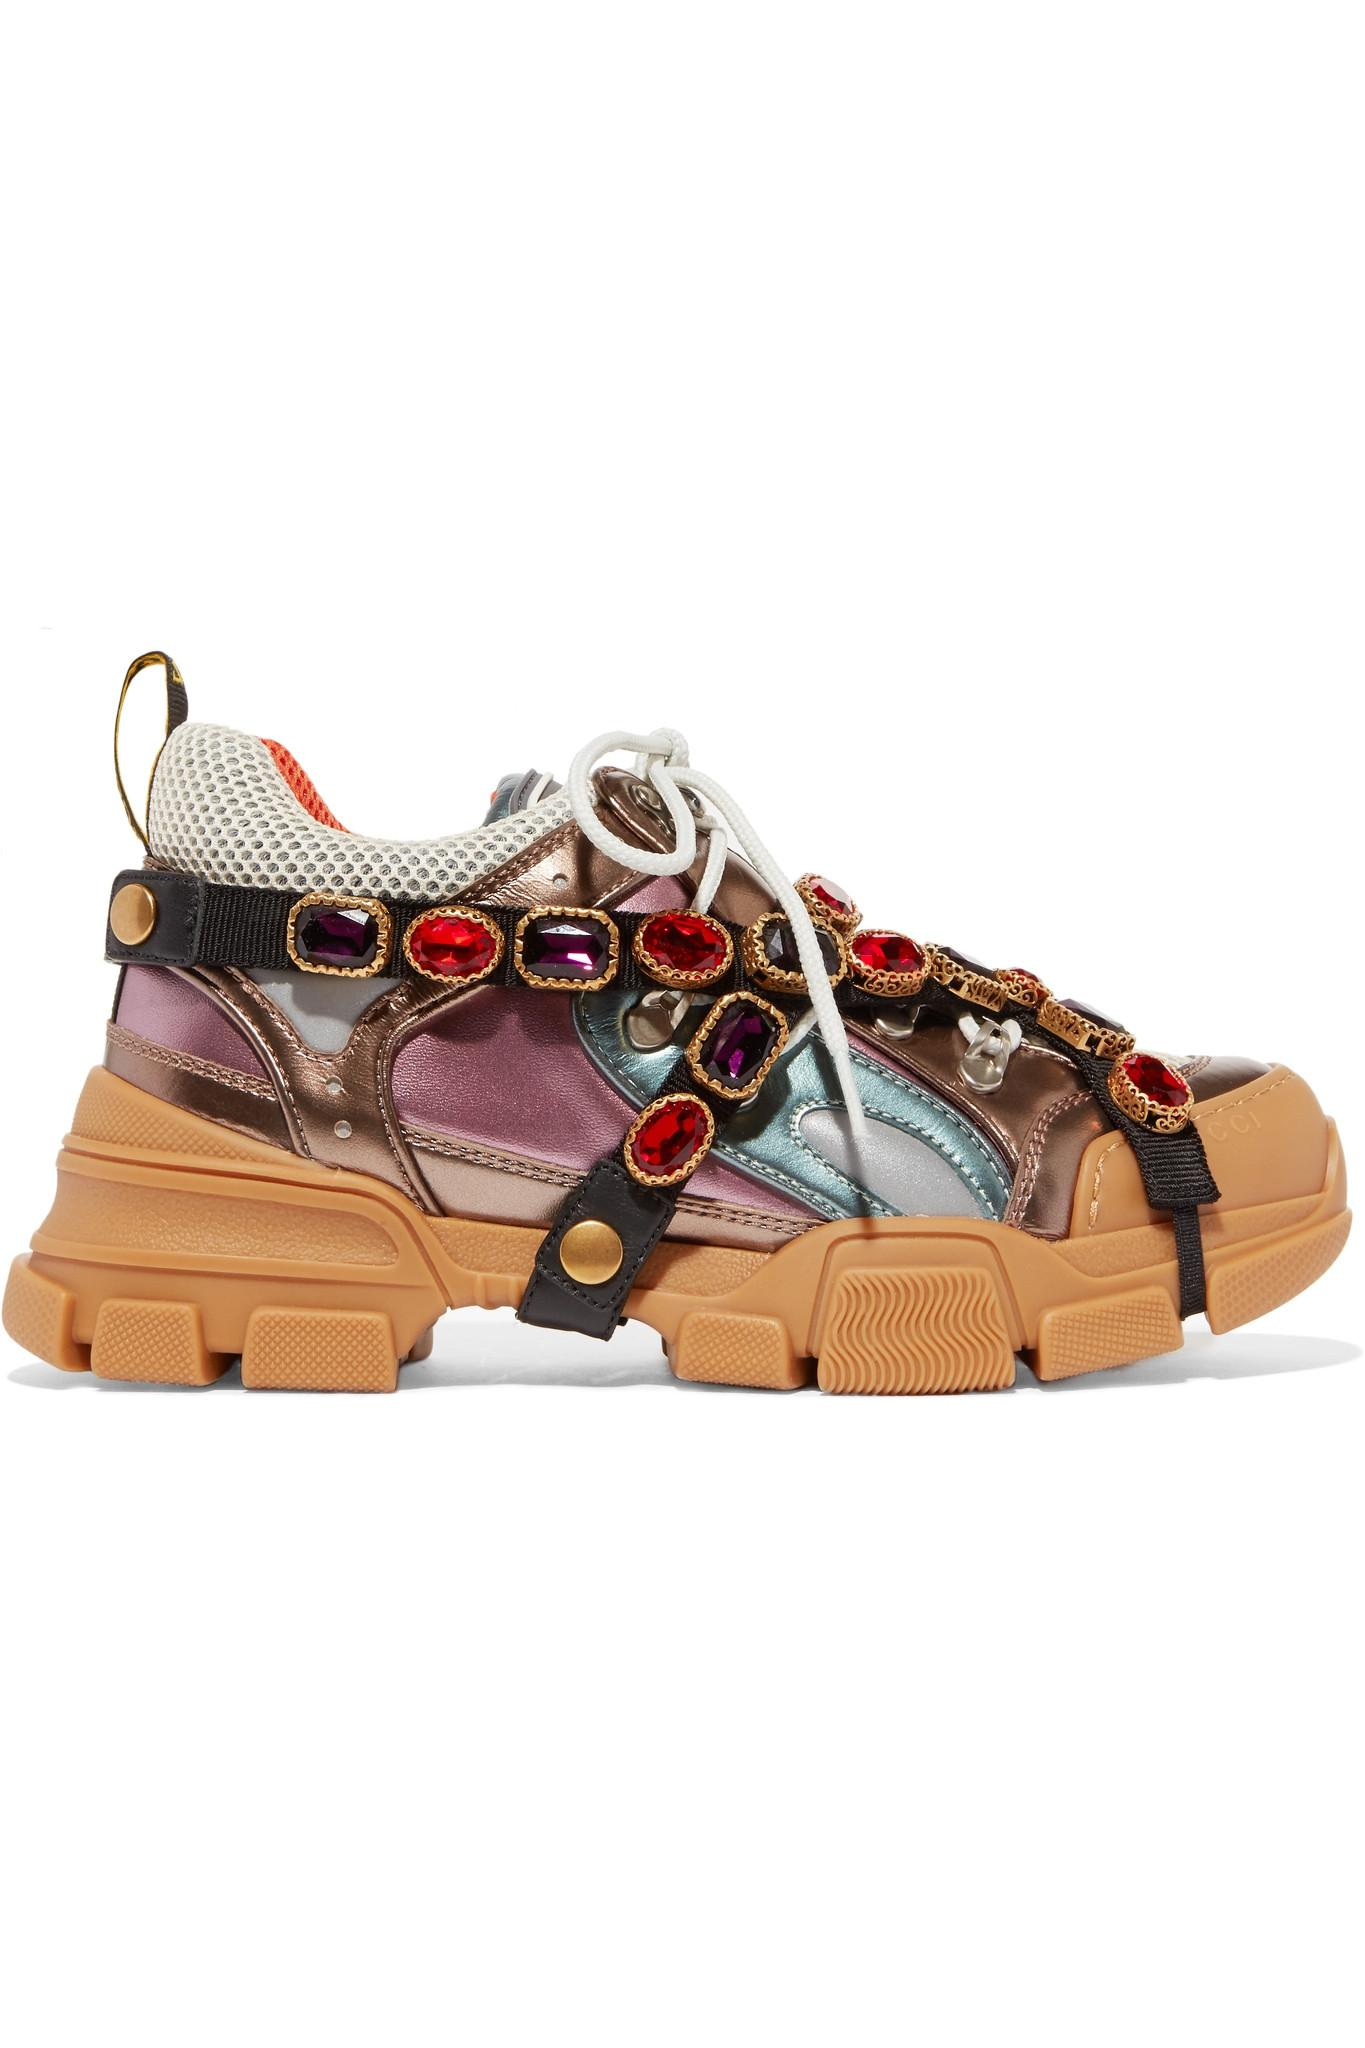 24ecbf536fc Lyst - Gucci Flashtrek Sneakers With Removable Crystals in Brown